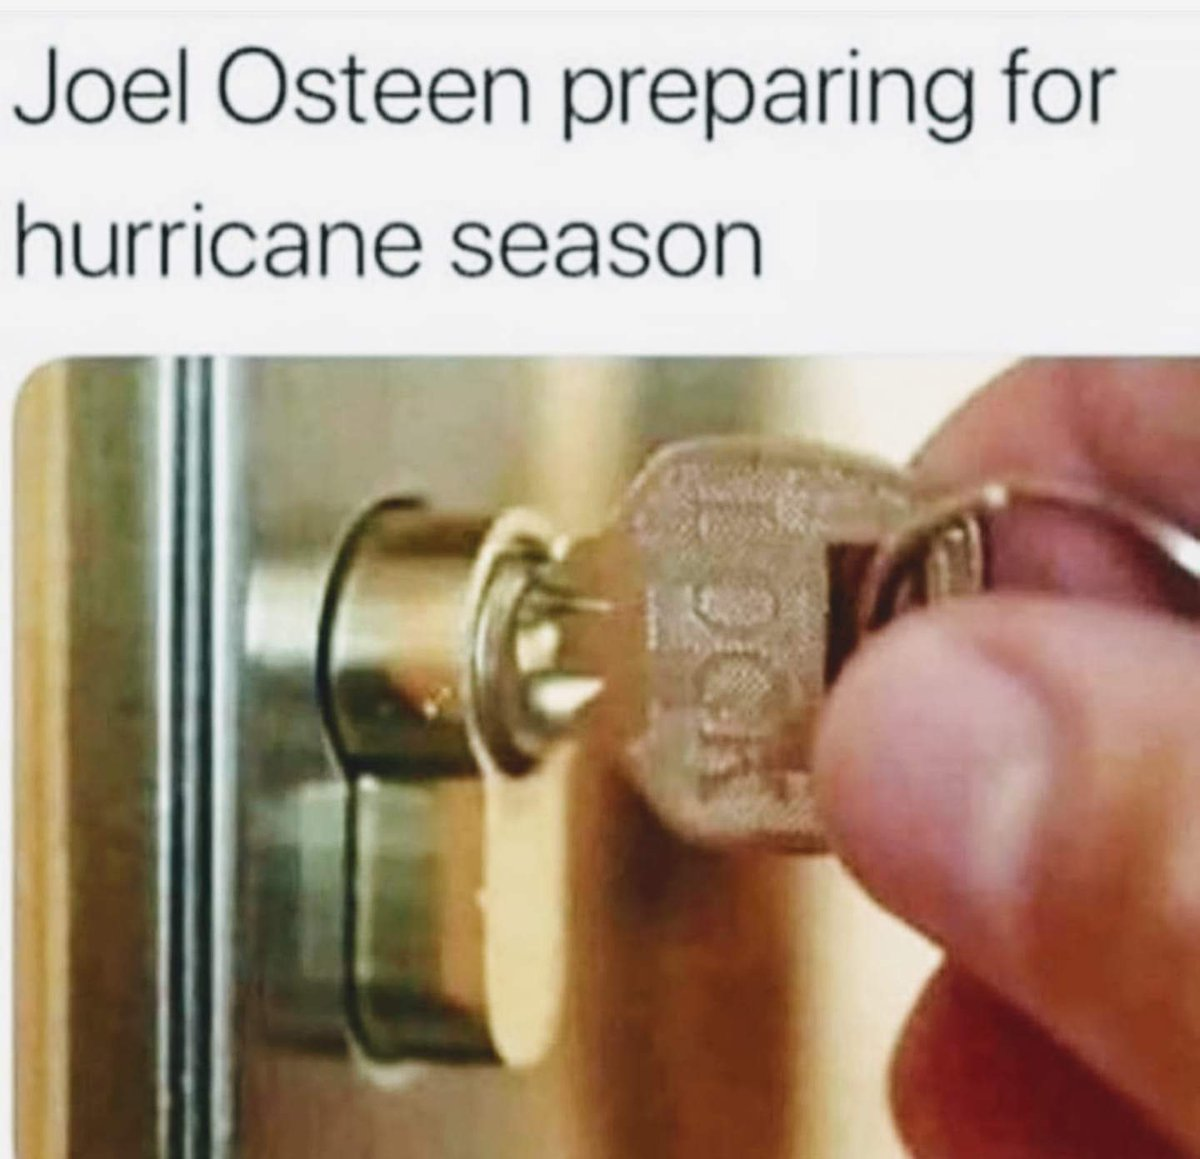 joelosteen hashtag on Twitter